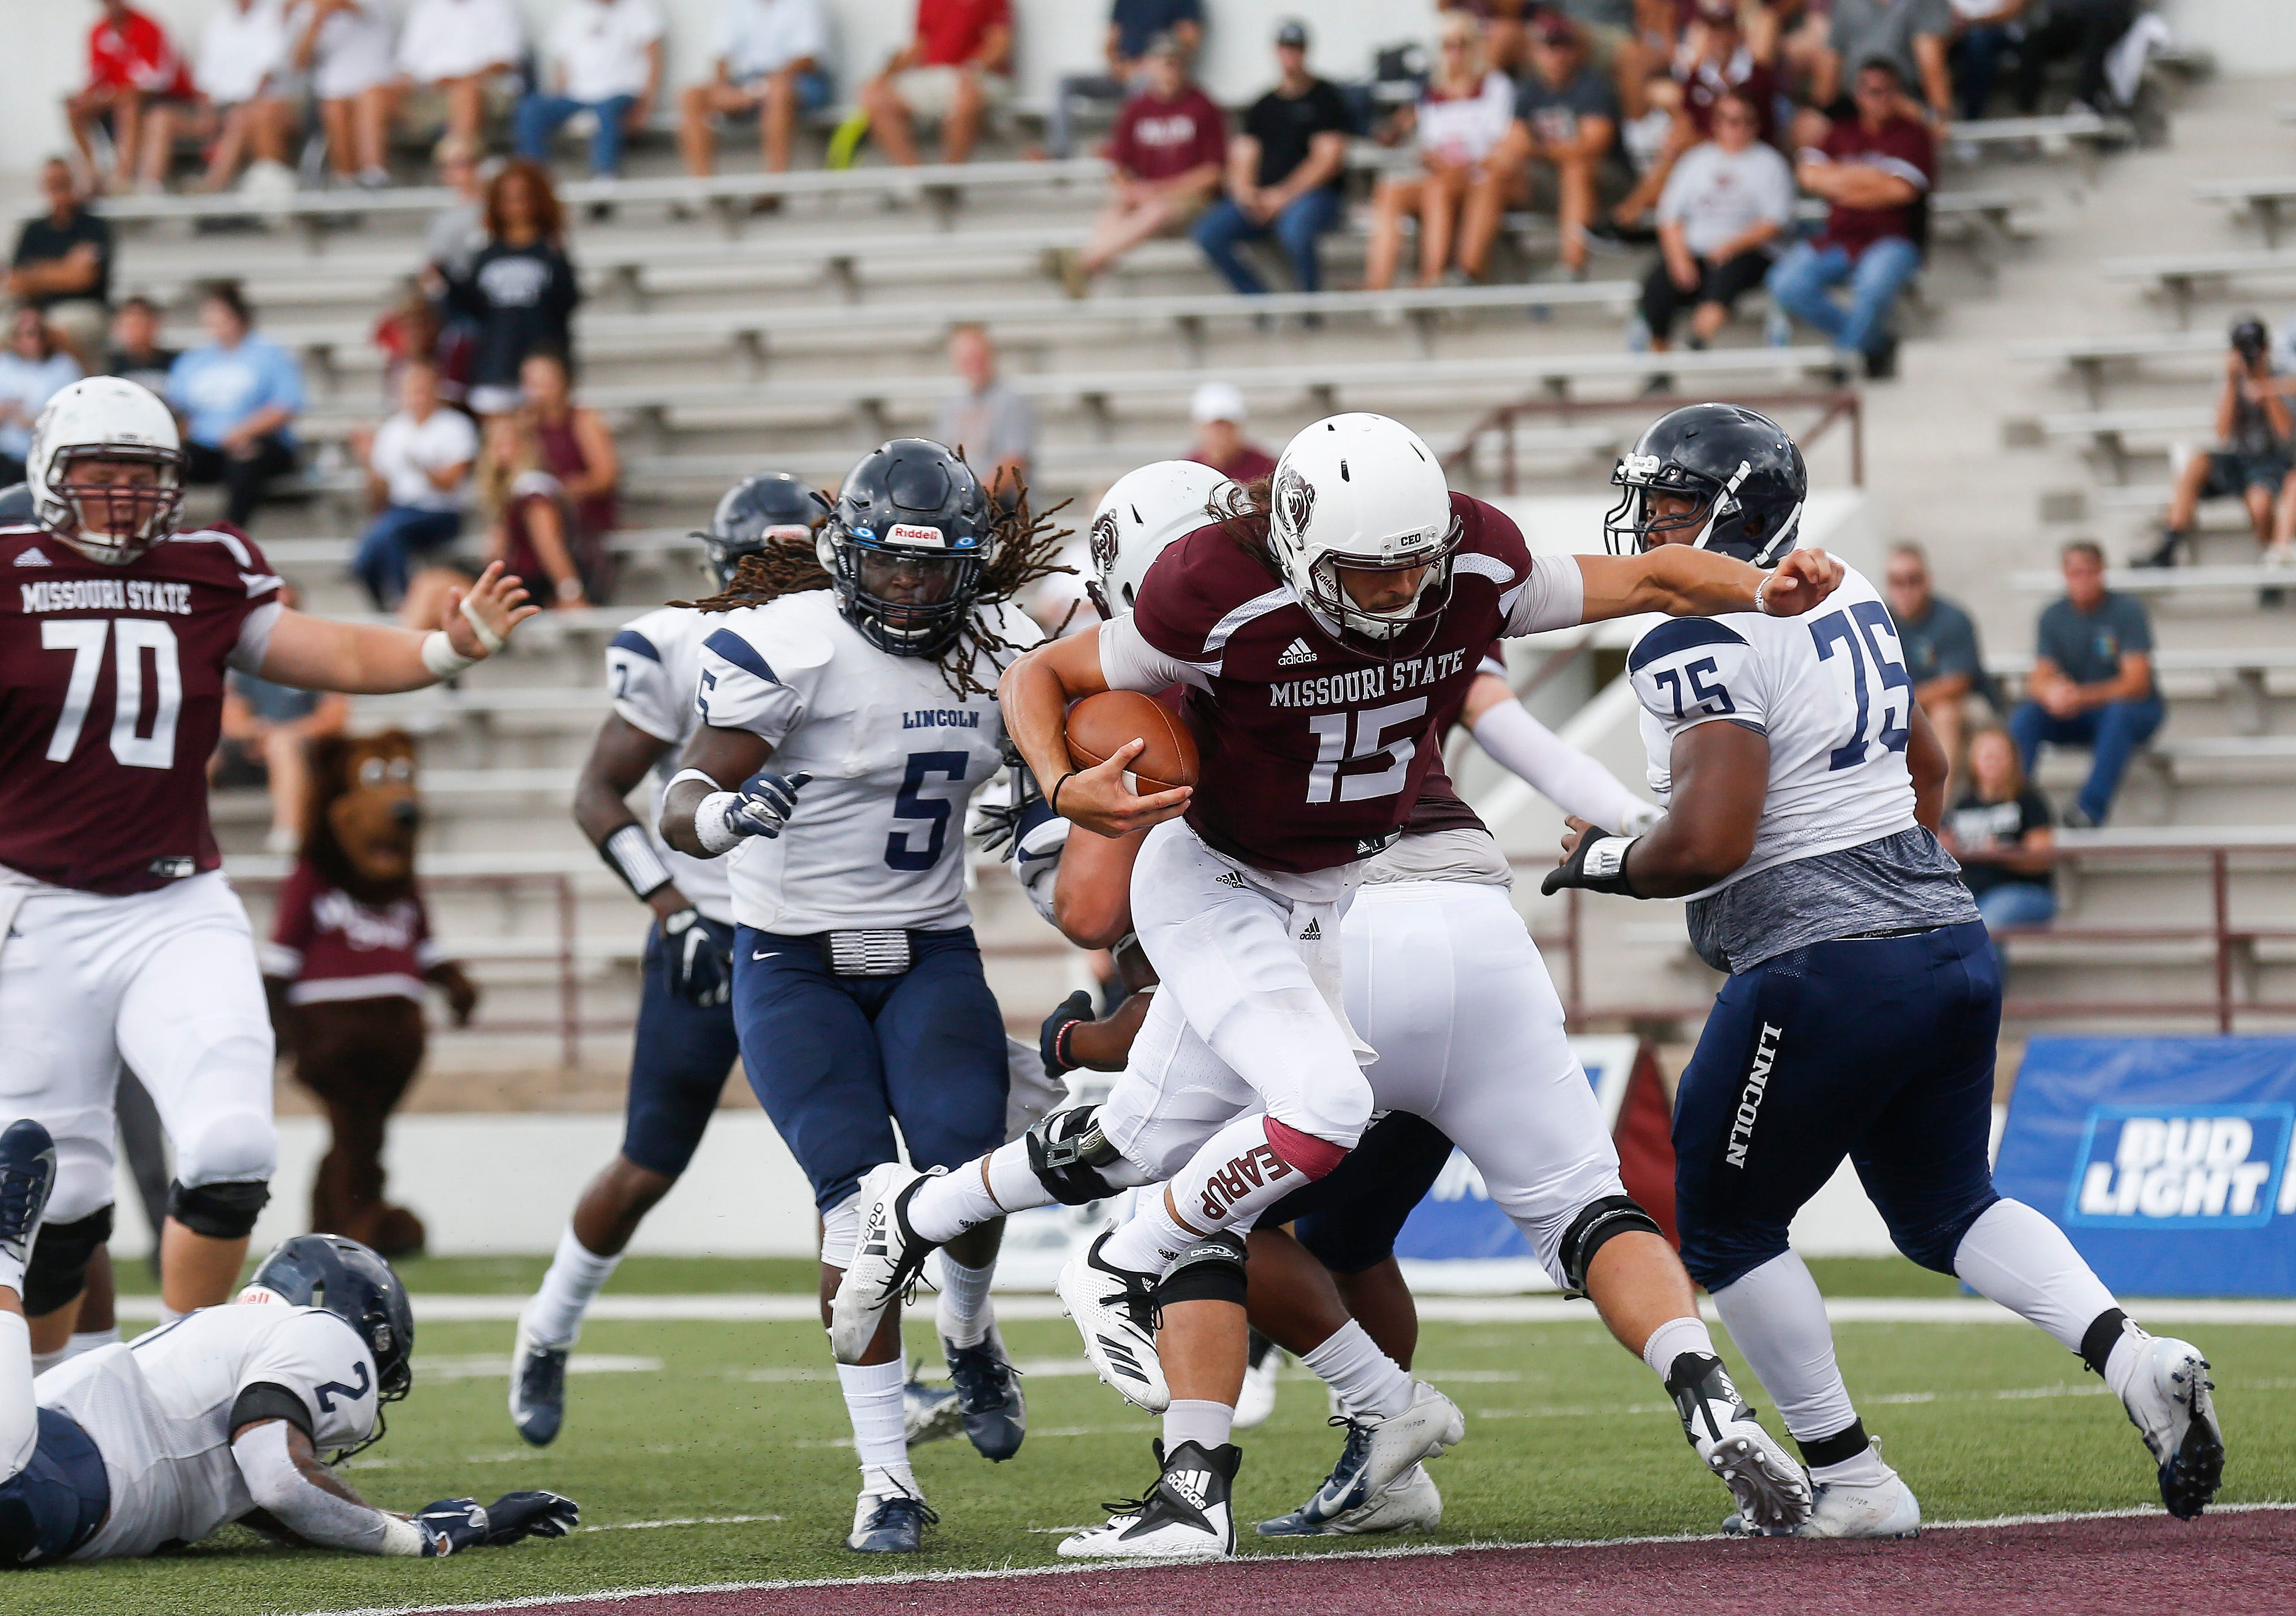 Peyton Huslig, of Missouri State, runs the ball in for a touchdown during the Bears' home opener at Plaster Stadium against Lincoln University on Thursday, Sep. 6, 2018.